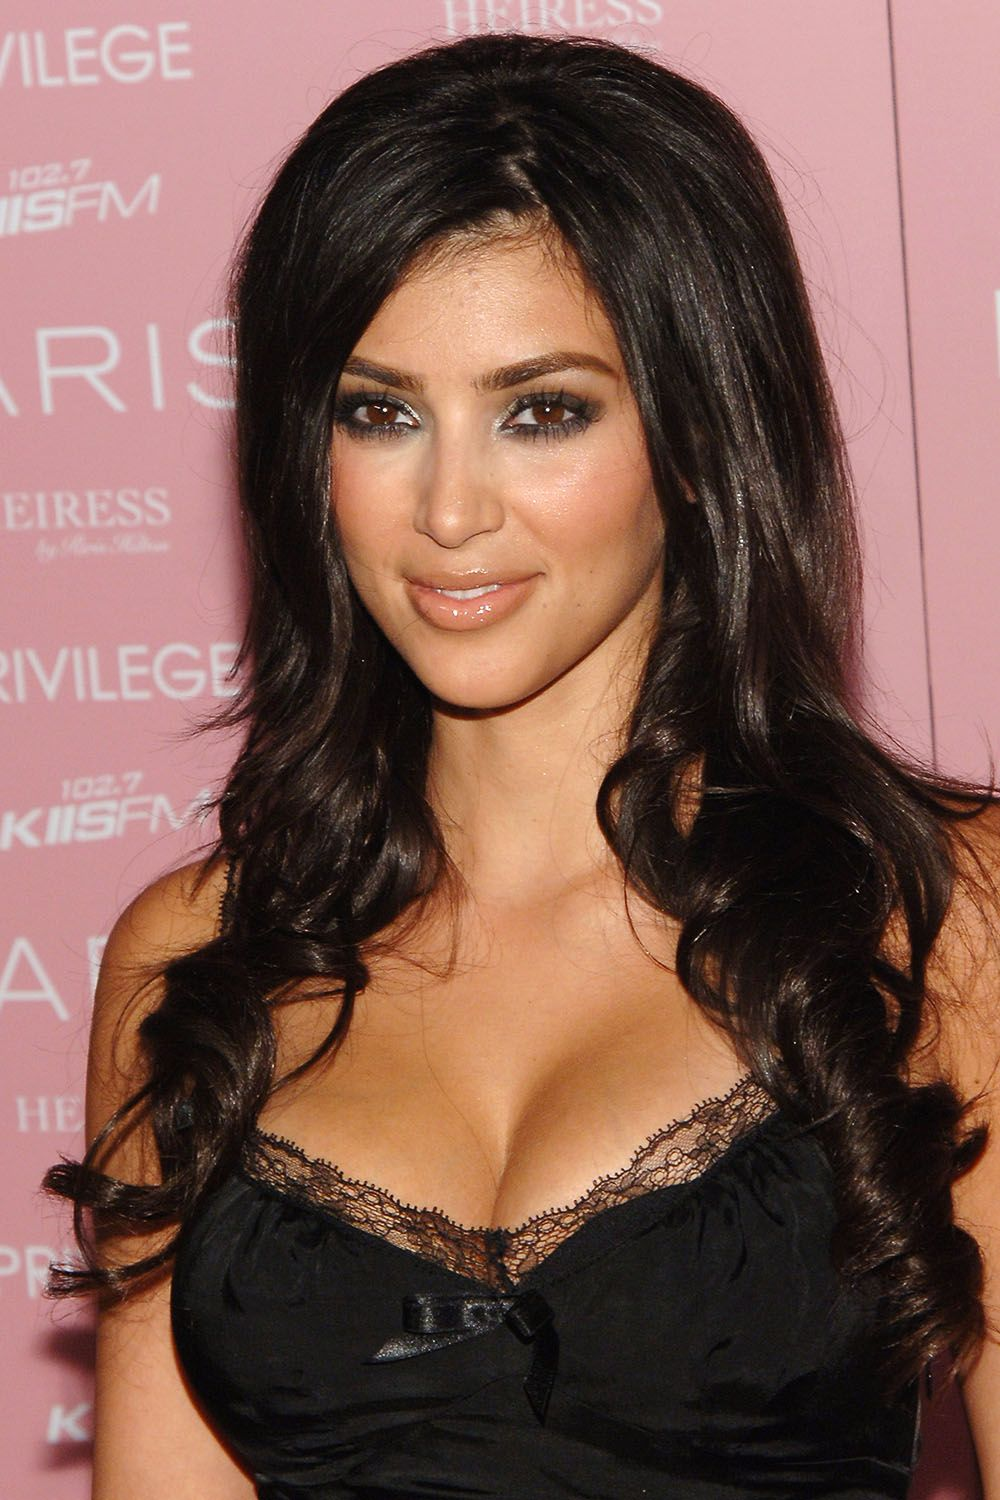 Kim Kardashian during Paris Hilton's CD Release Party at Privilege - Arrivals at Privilege in West Hollywood, California, United States. (Photo by J.Sciulli/WireImage)